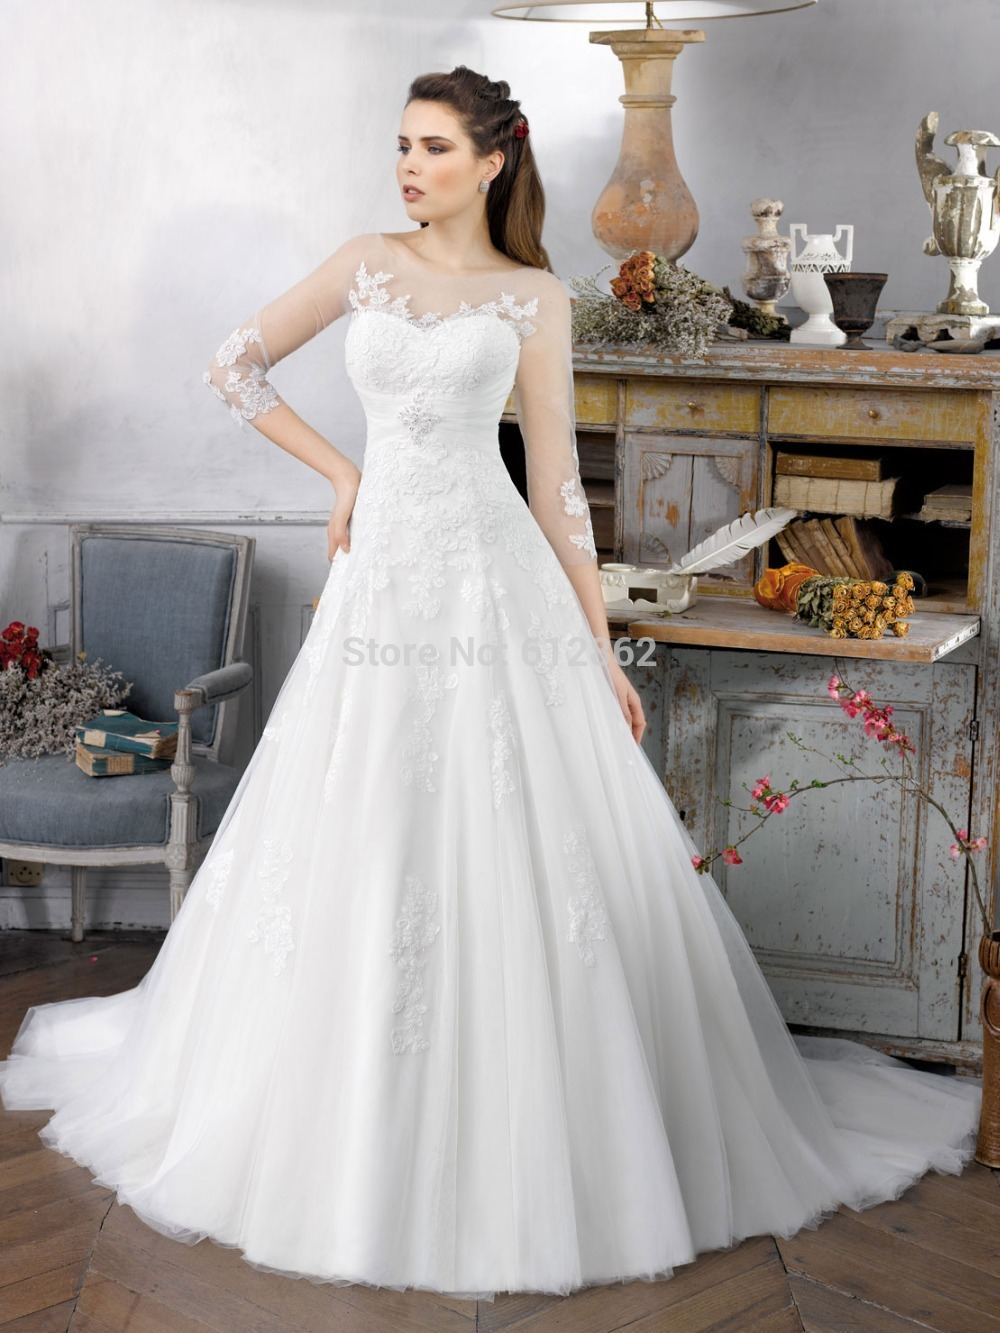 Modest Lace 3 4 Sleeve Wedding Dress Promotion-Shop for ...